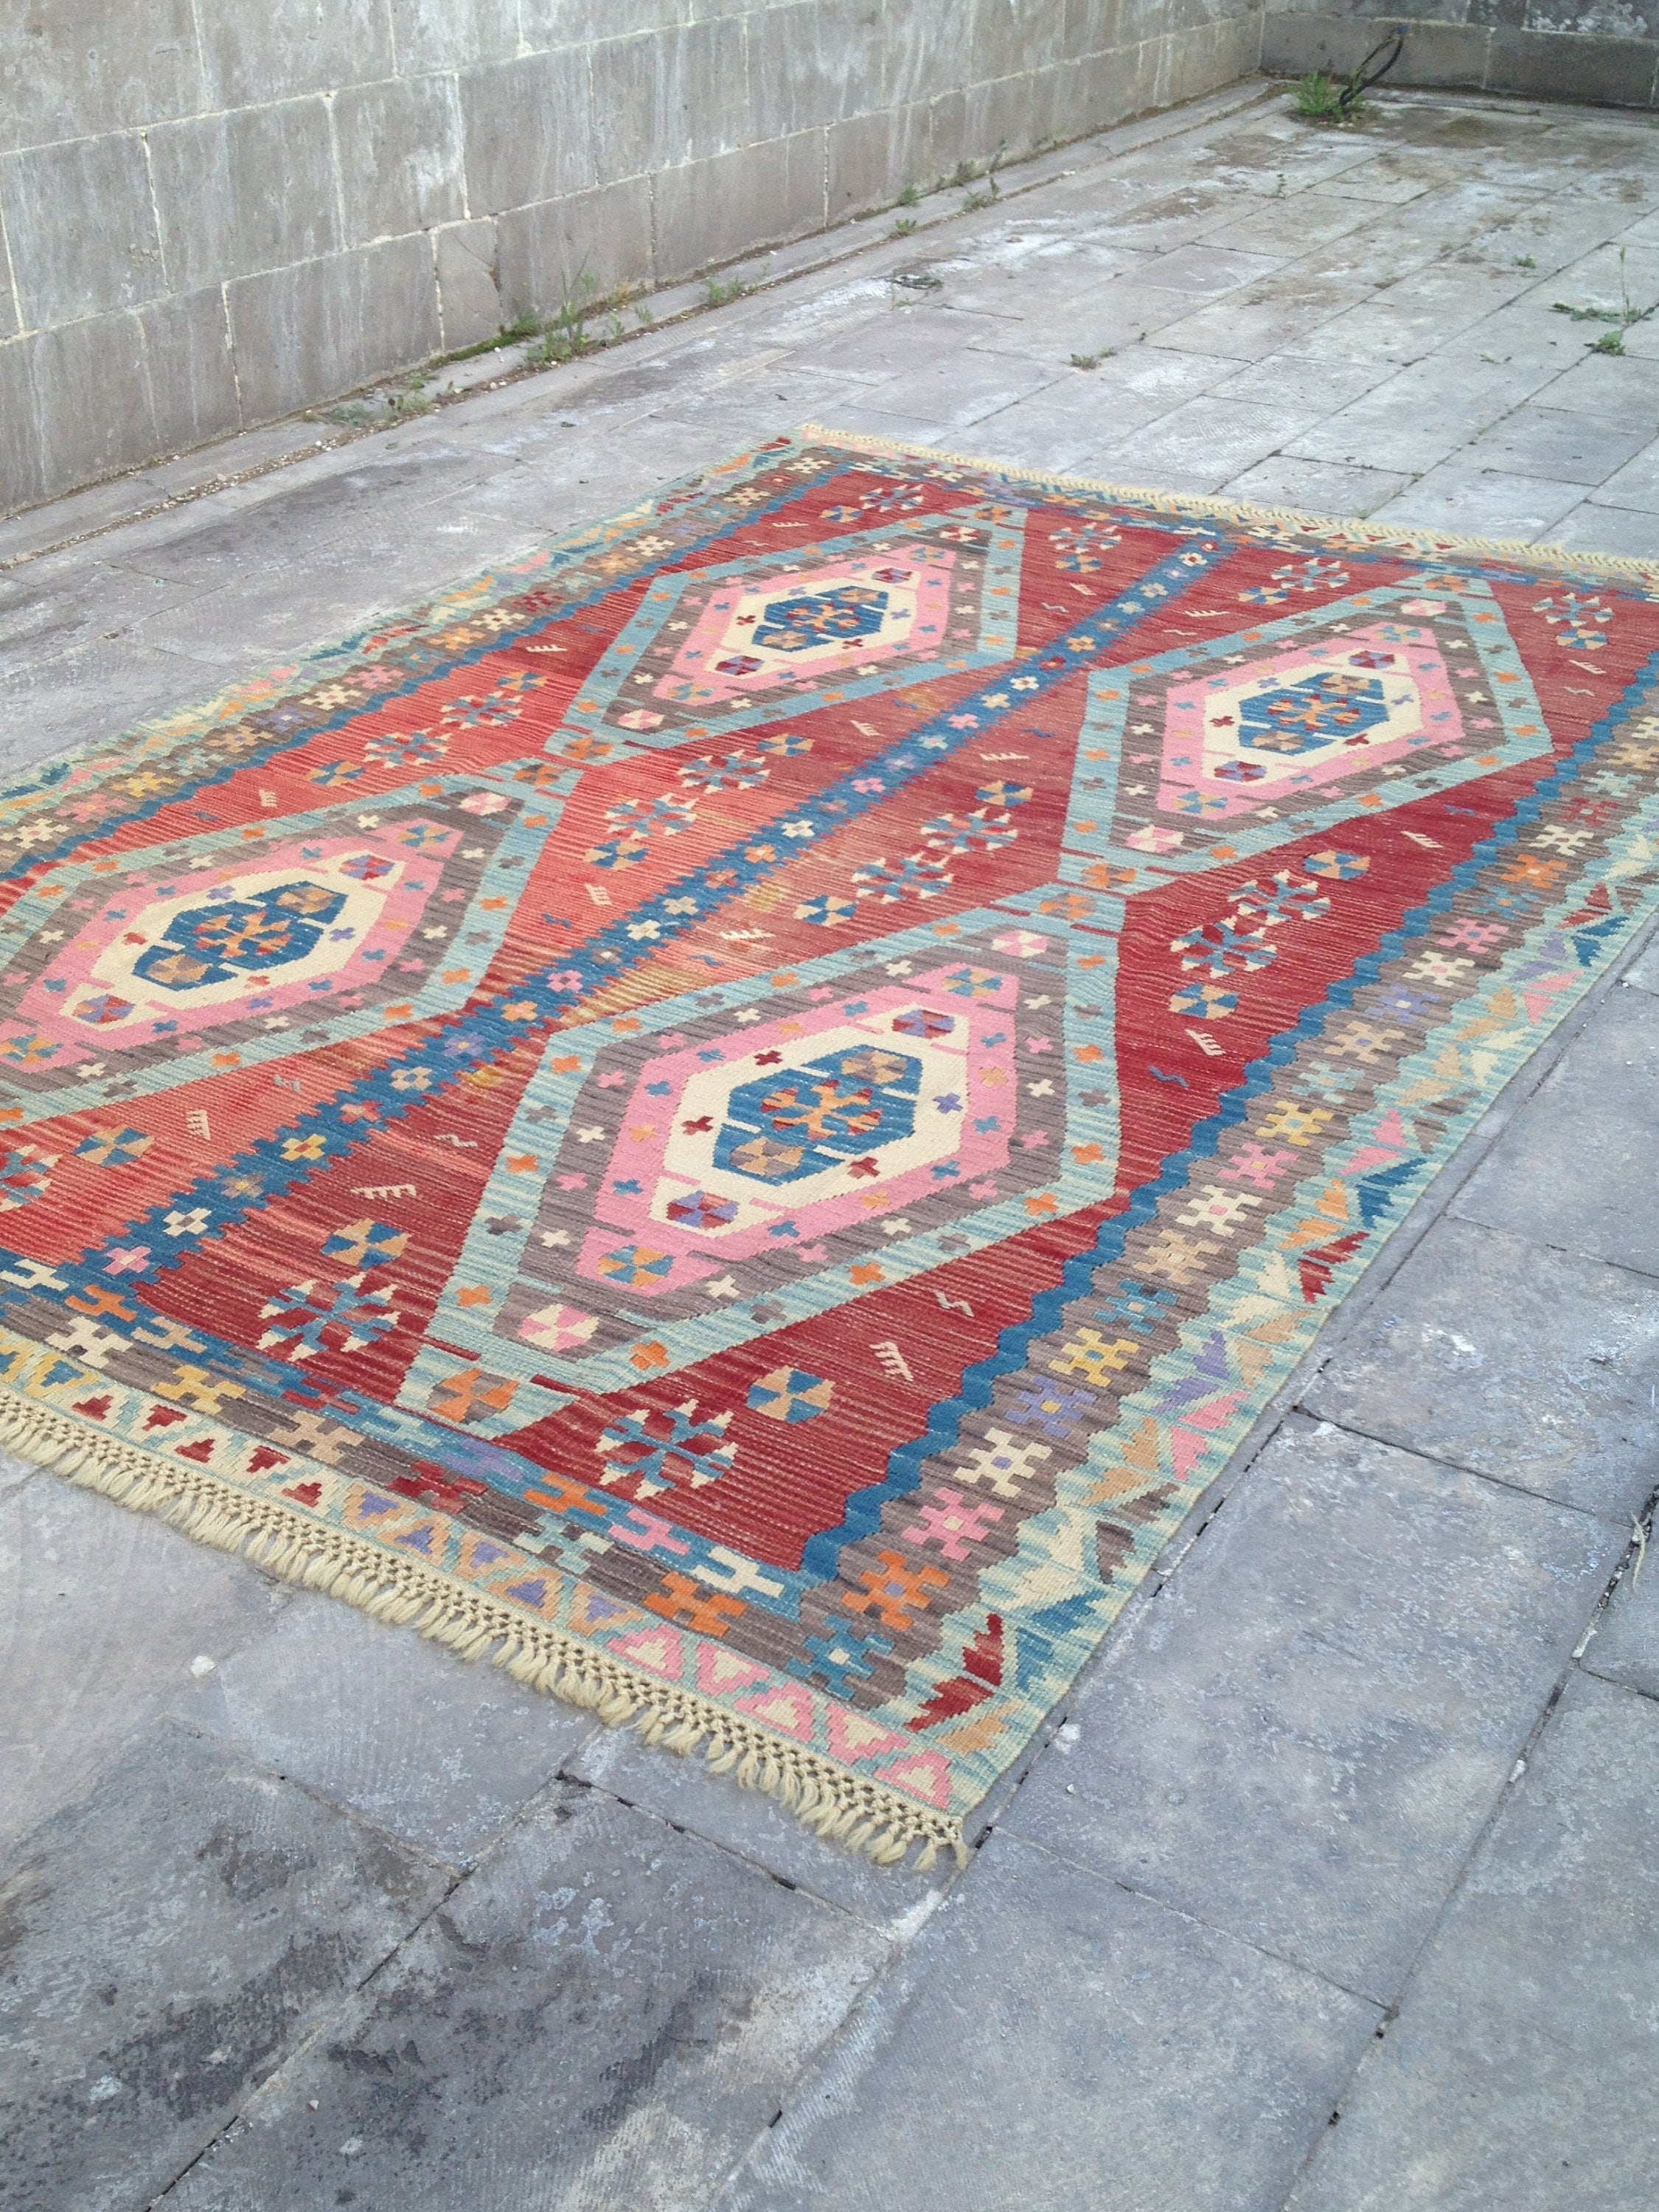 6x9 area rug for living room large and vintage turkish kilim for Living room rugs 6x9